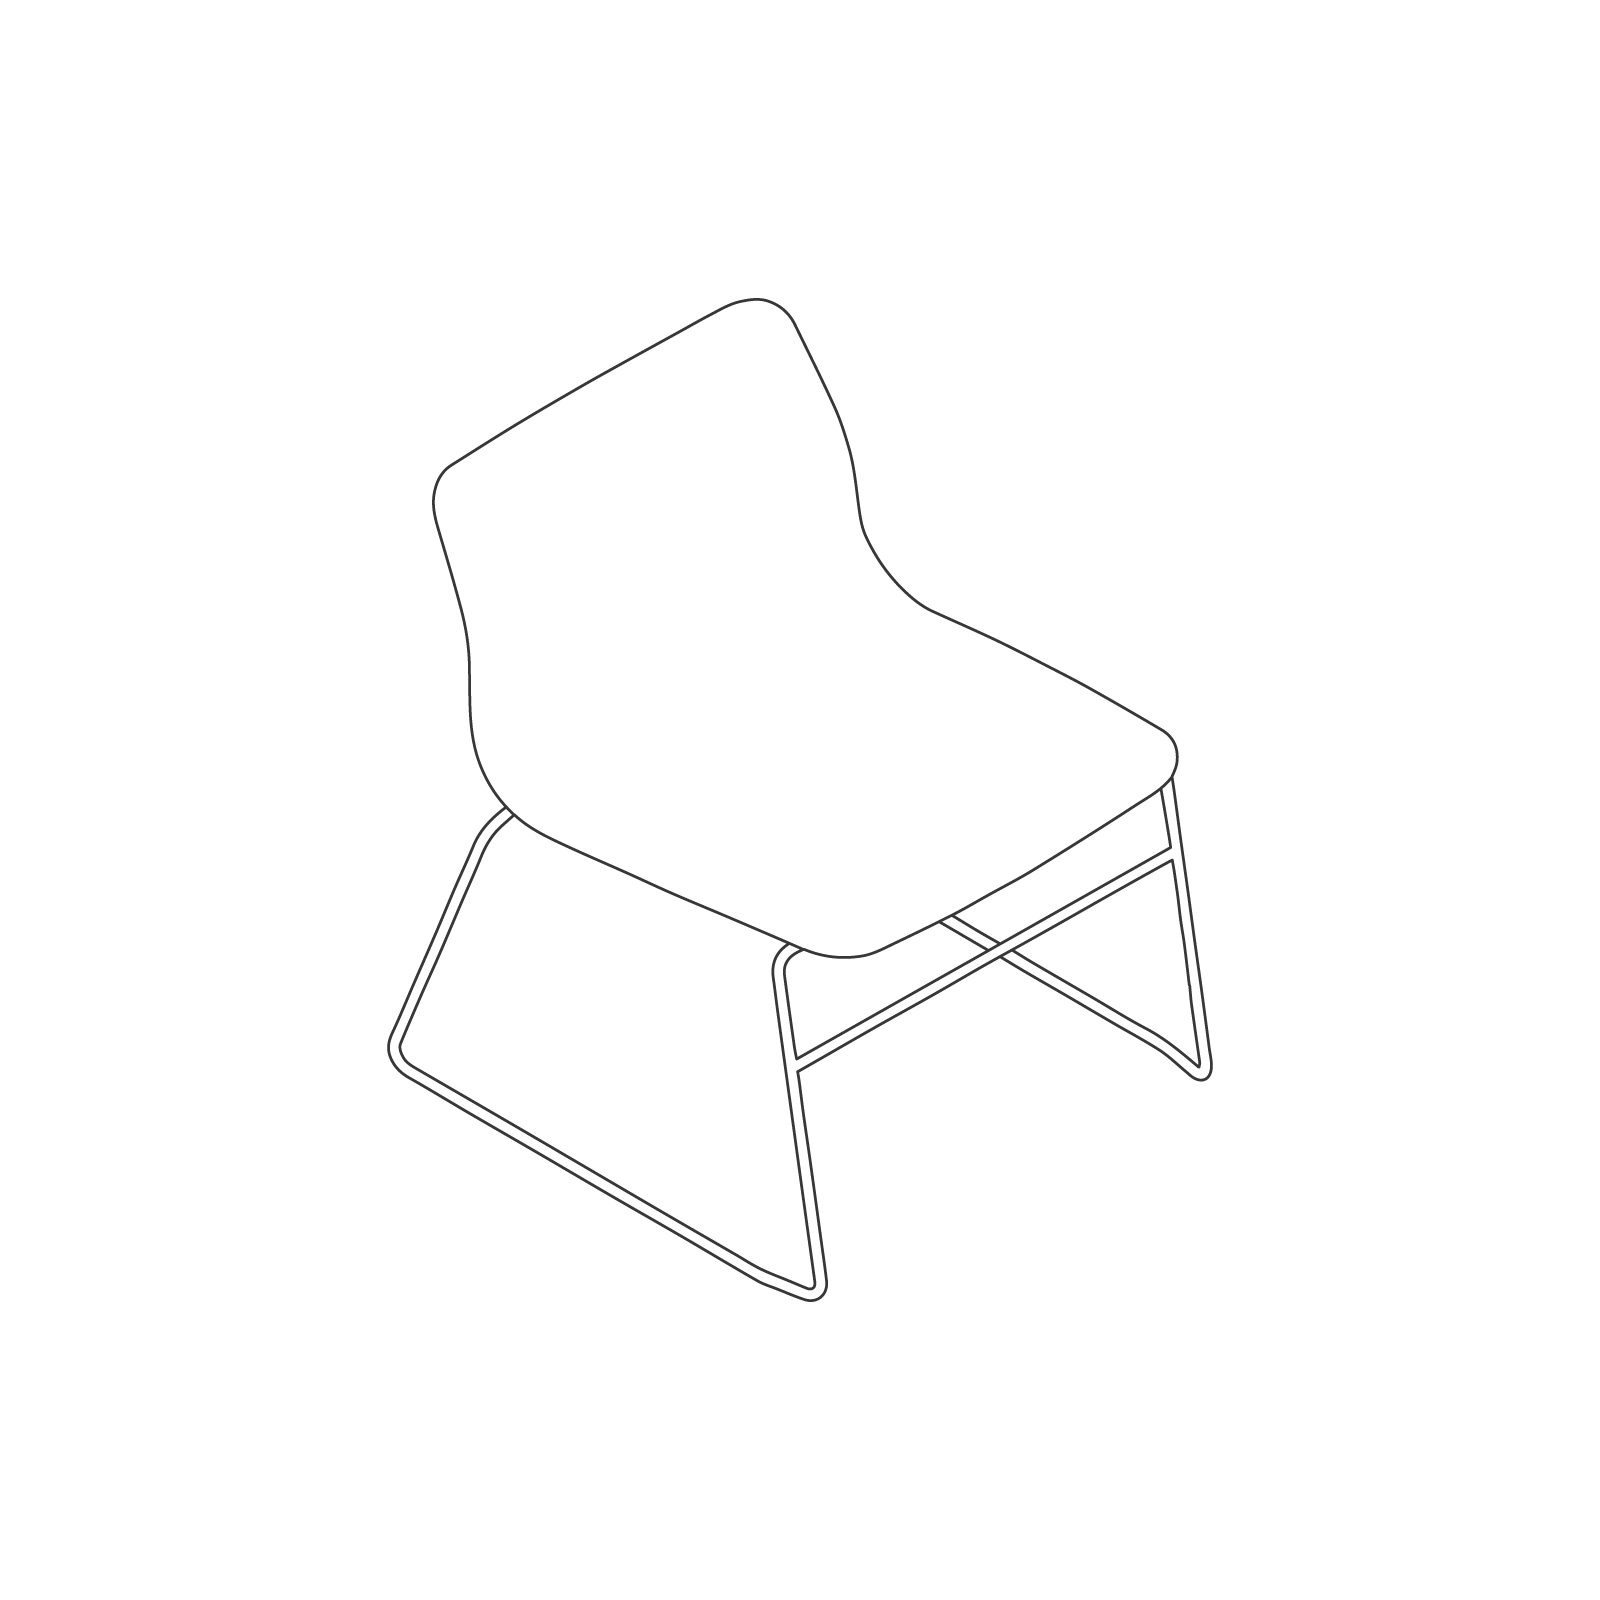 A line drawing of Viv Lounge Chair.